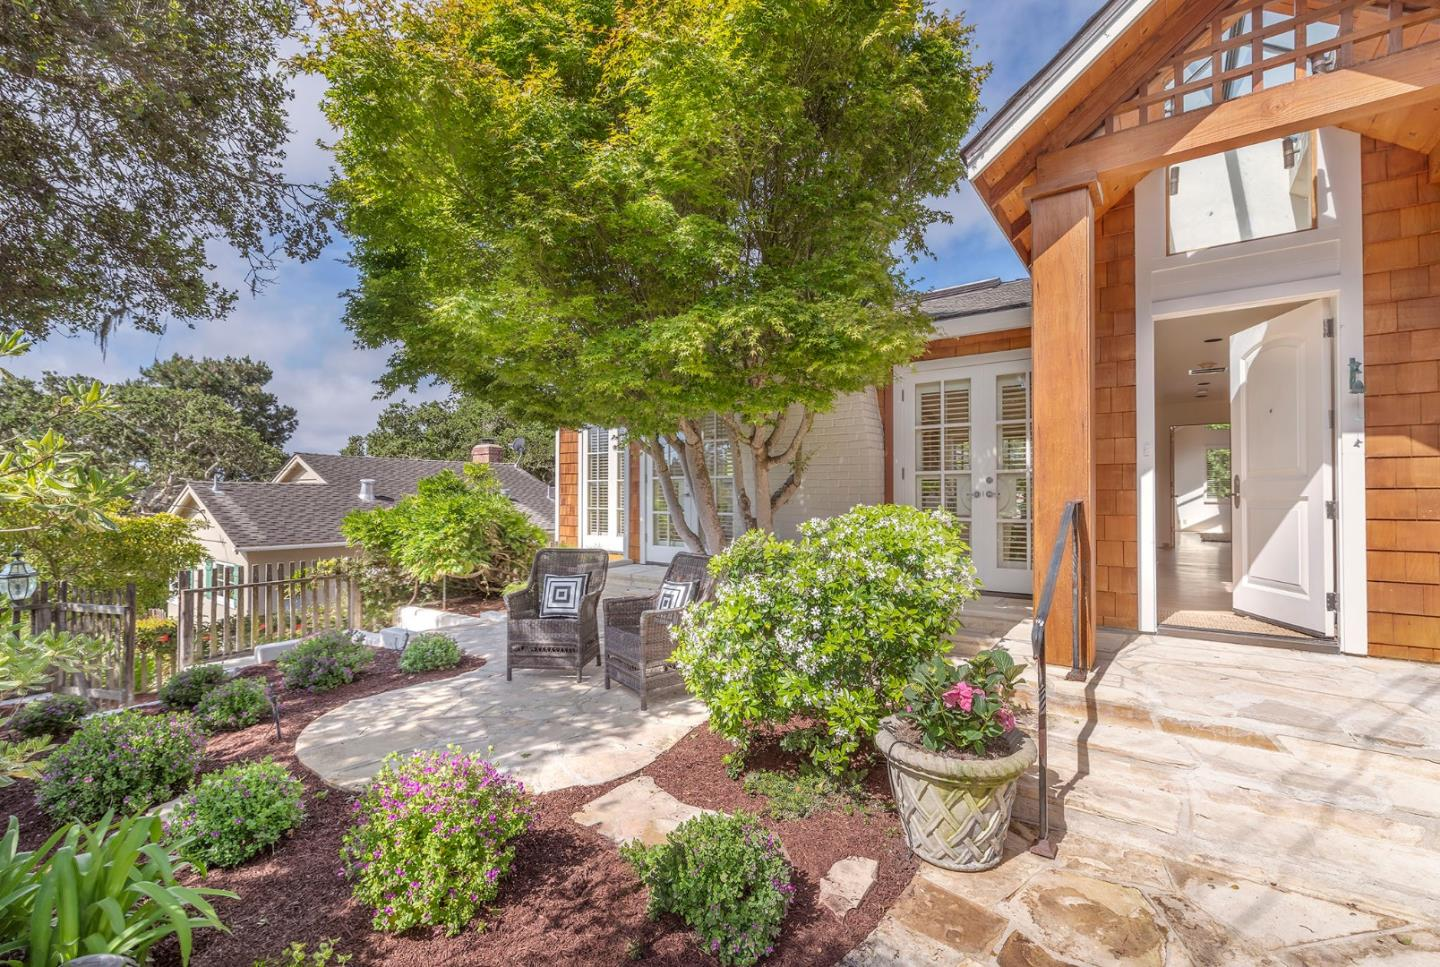 Do you know that feeling you get when you know you have found something special?  That is the feeling you will experience when you arrive at this sweet retreat by the Sea.  Loved and owned by the same family for over 25 years, the captivating cottage sits on a quiet street South of Ocean Avenue, just above downtown Carmel by the Sea.  The wonderful single-level home has a open floor plan that conveys warmth and spaciousness.  The beamed vaulted ceilings and skylights shower the home with sunlight. The home is filled with windows that look out to the private and gracefully landscaped yard, it is a perfect setting to read, take in long talks with friends and to dine under the stars. The home recently received a lovely cosmetic refresh, including all new kitchen appliances and is ready to welcome its new owner. This unique offering includes a 2BD/2BA main house, a detached 1BD/1BA guest house and a spacious 1BA studio/apartment to be used as one desired, from art studio to in-law suite.